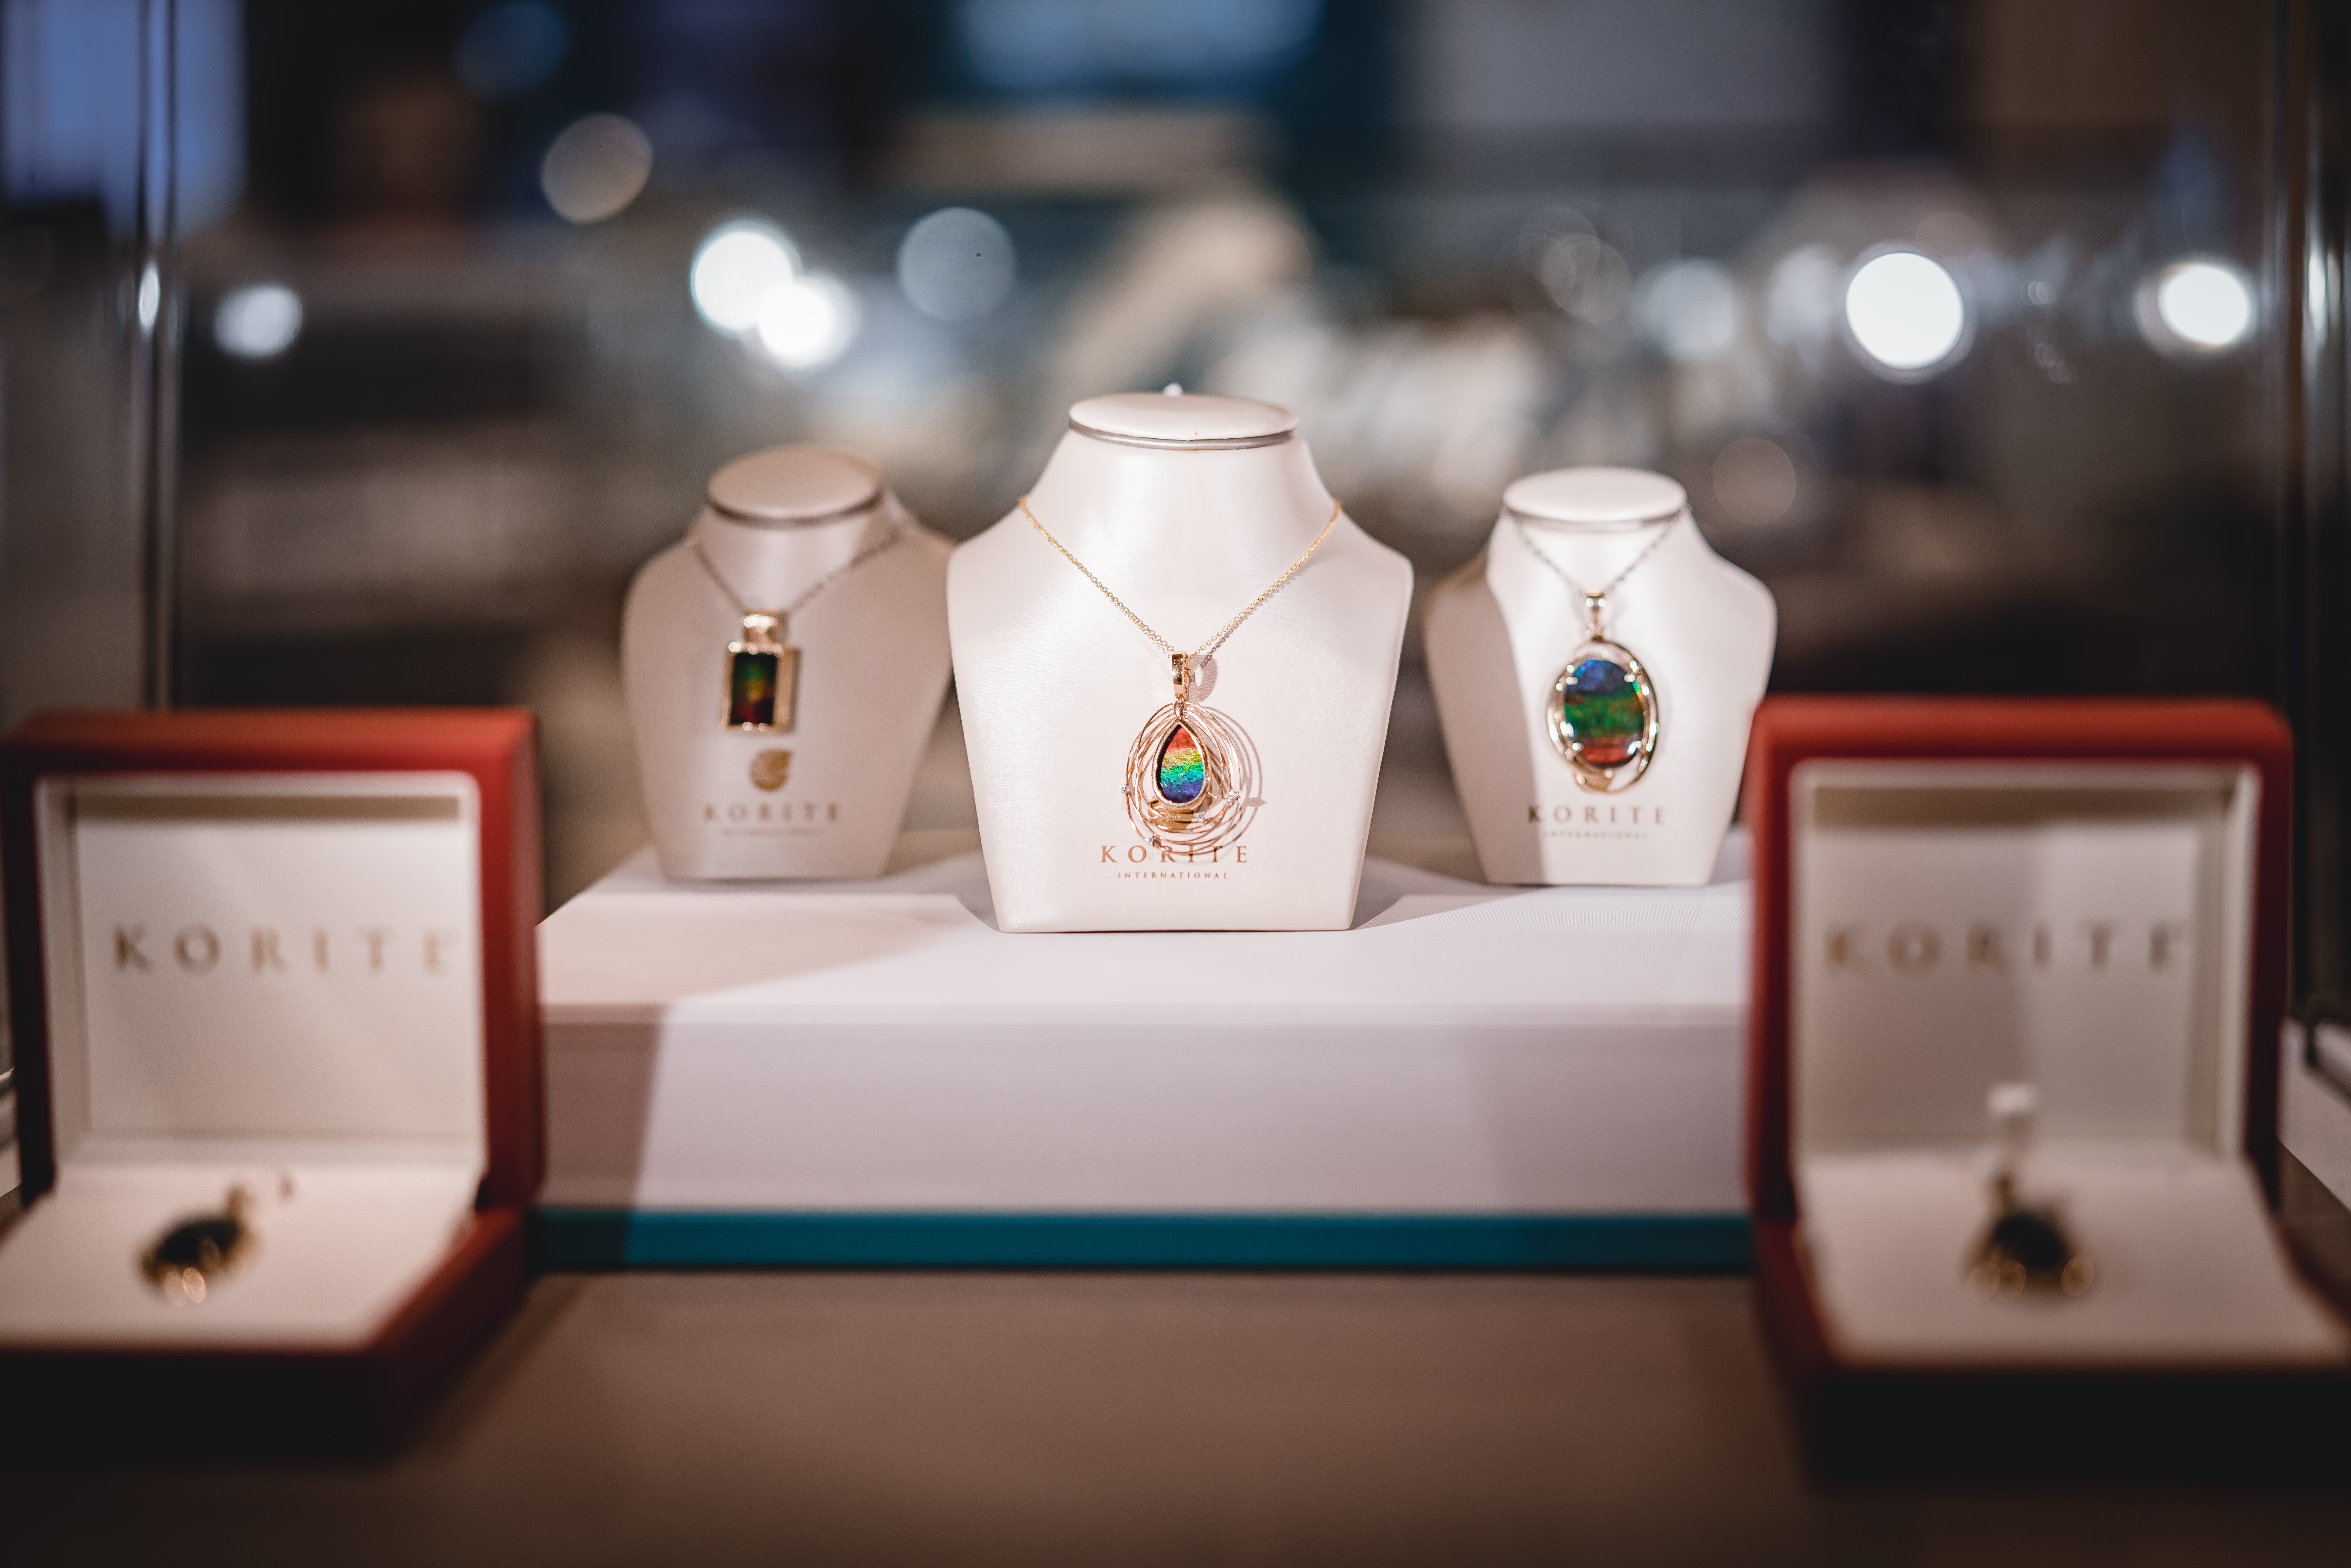 several assorted-color necklaces with pendants and boxes